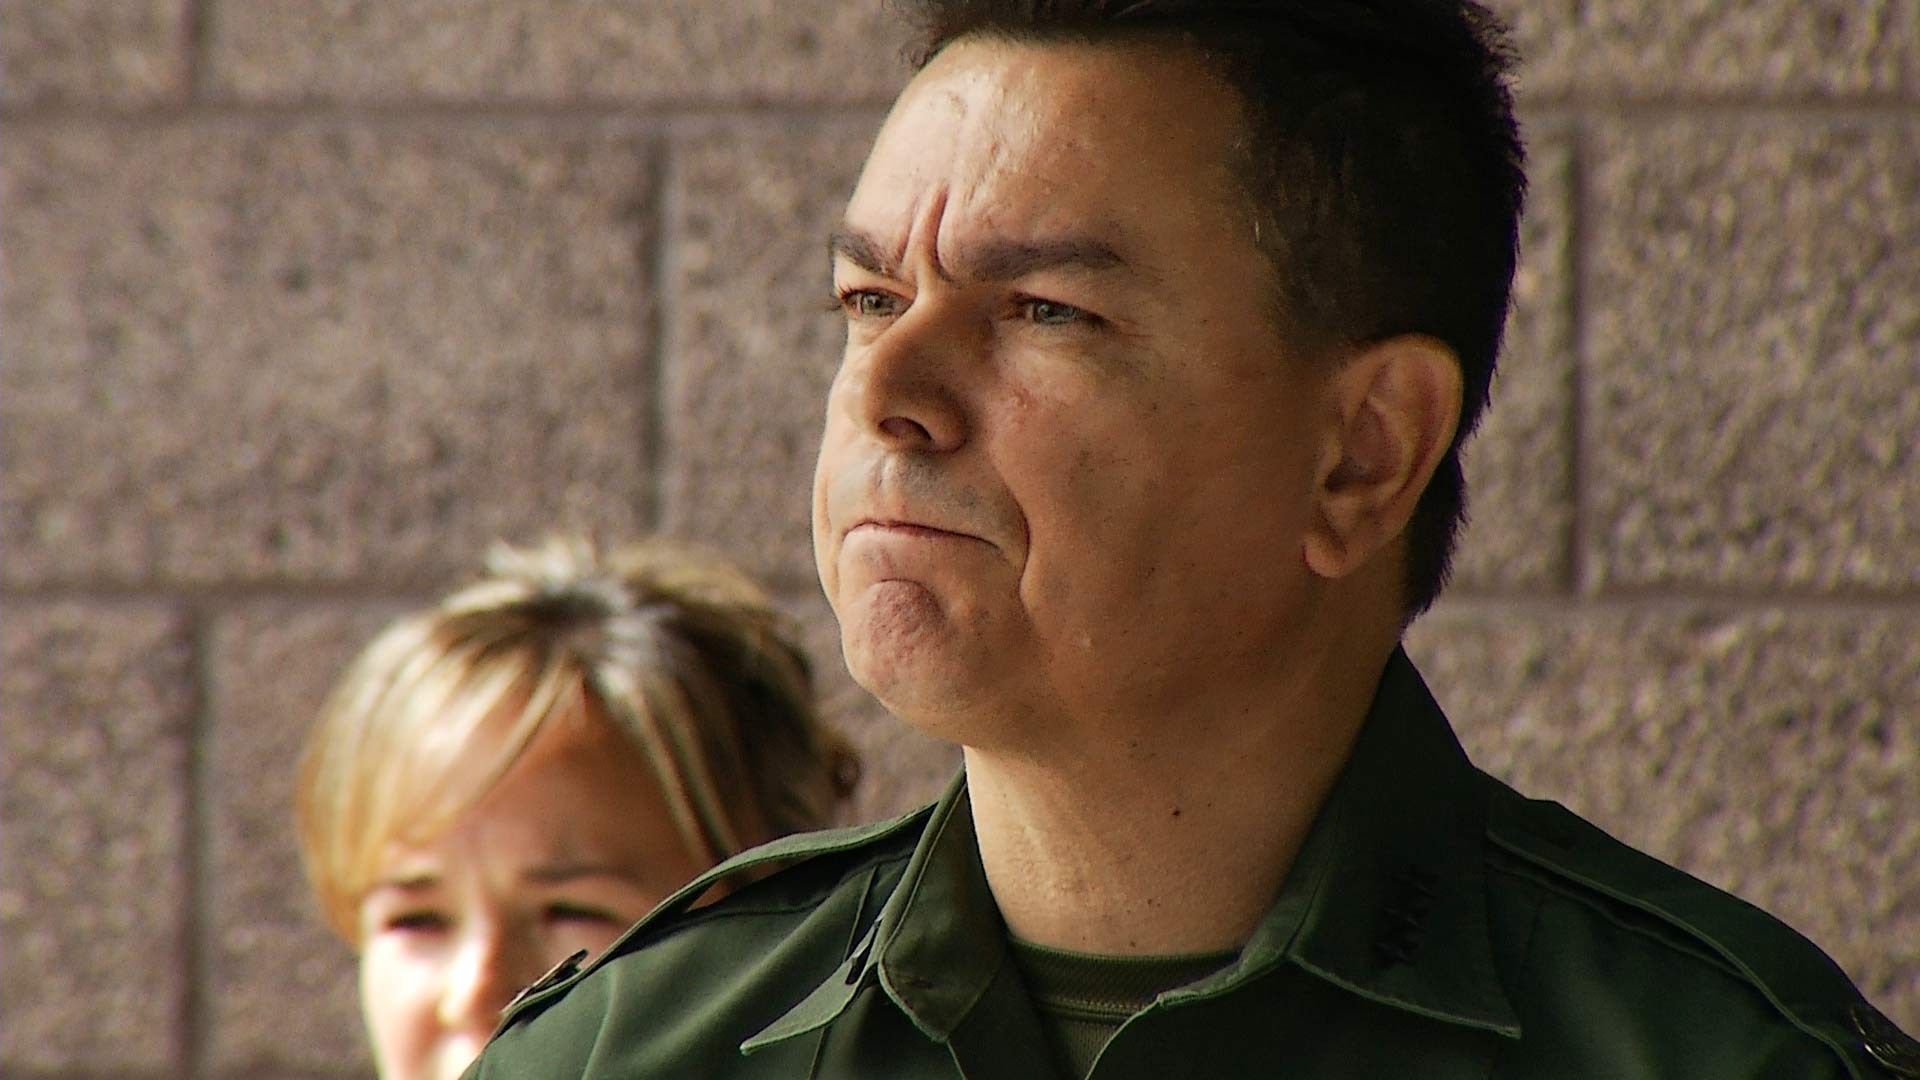 Border Patrol Tucson Sector Chief Rodolfo Karisch speaks to the media June 13, 2018 about a shooting that wounded an agent on the border near Arivaca the day before.